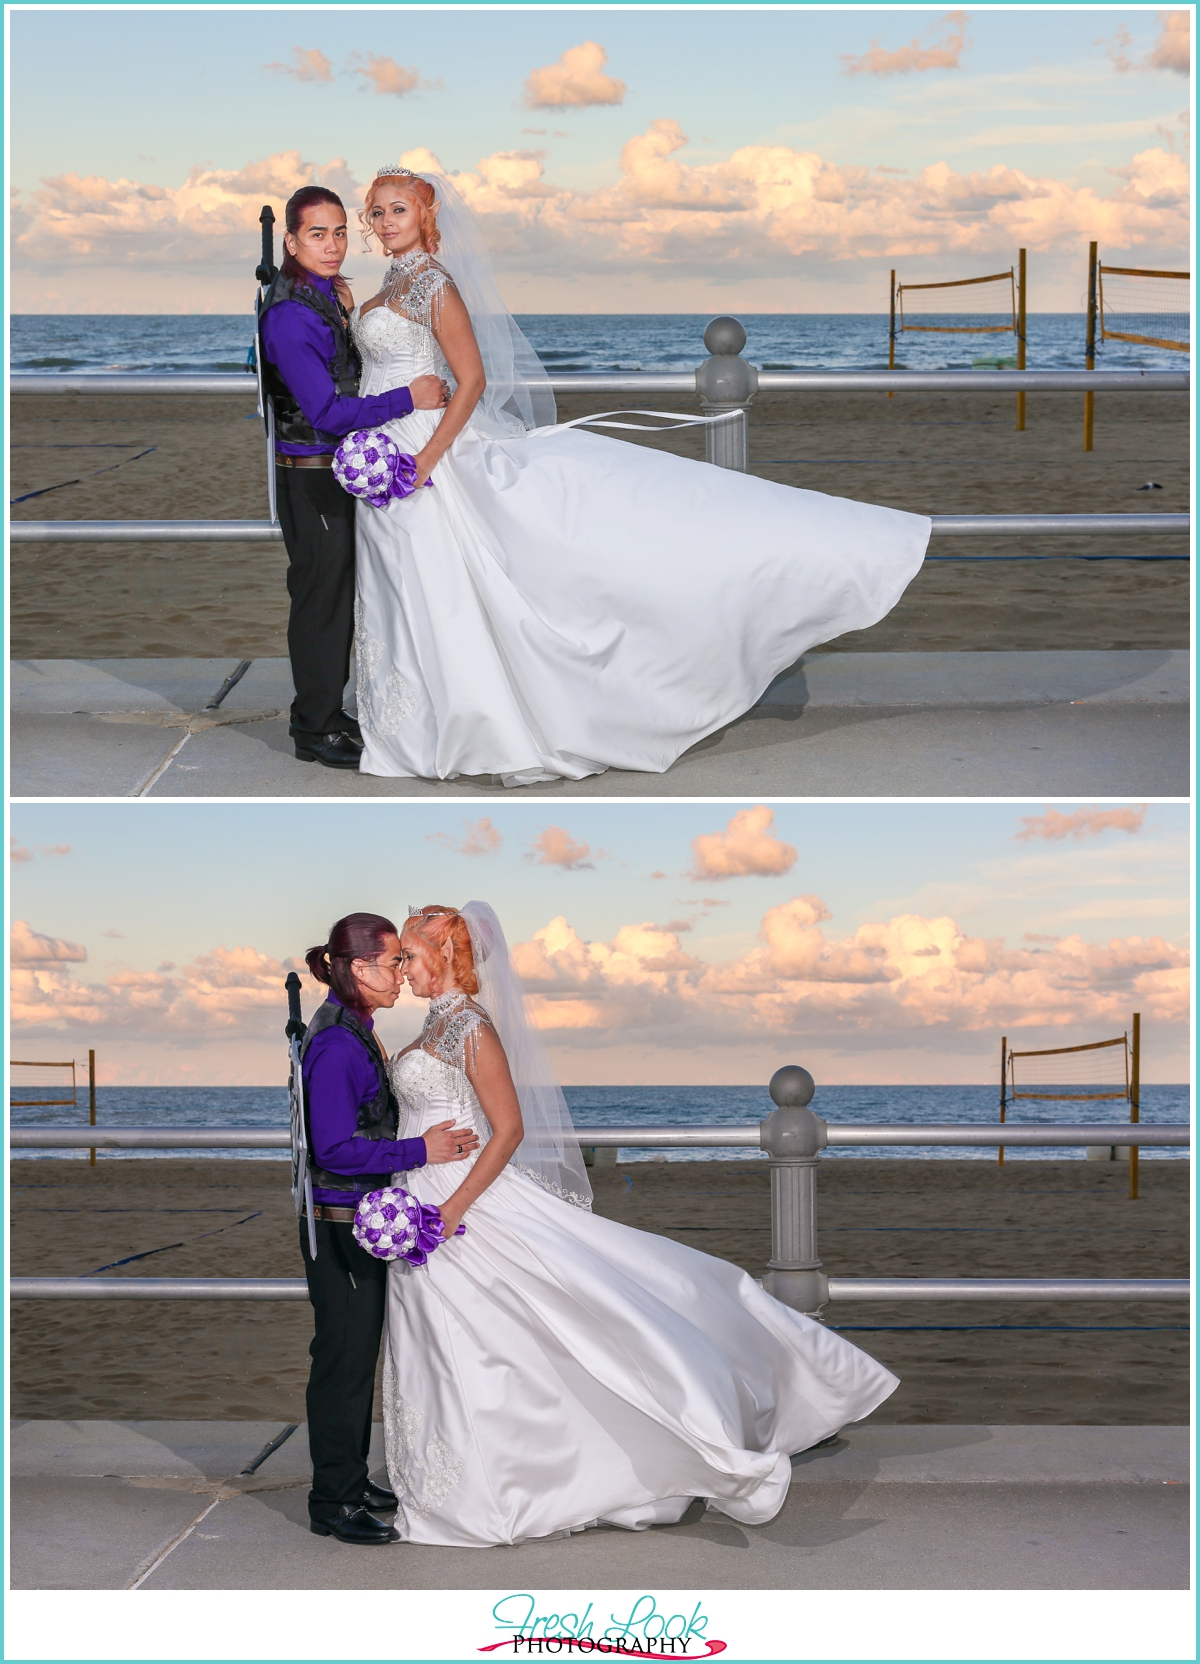 Beach pictures of the bride and groom